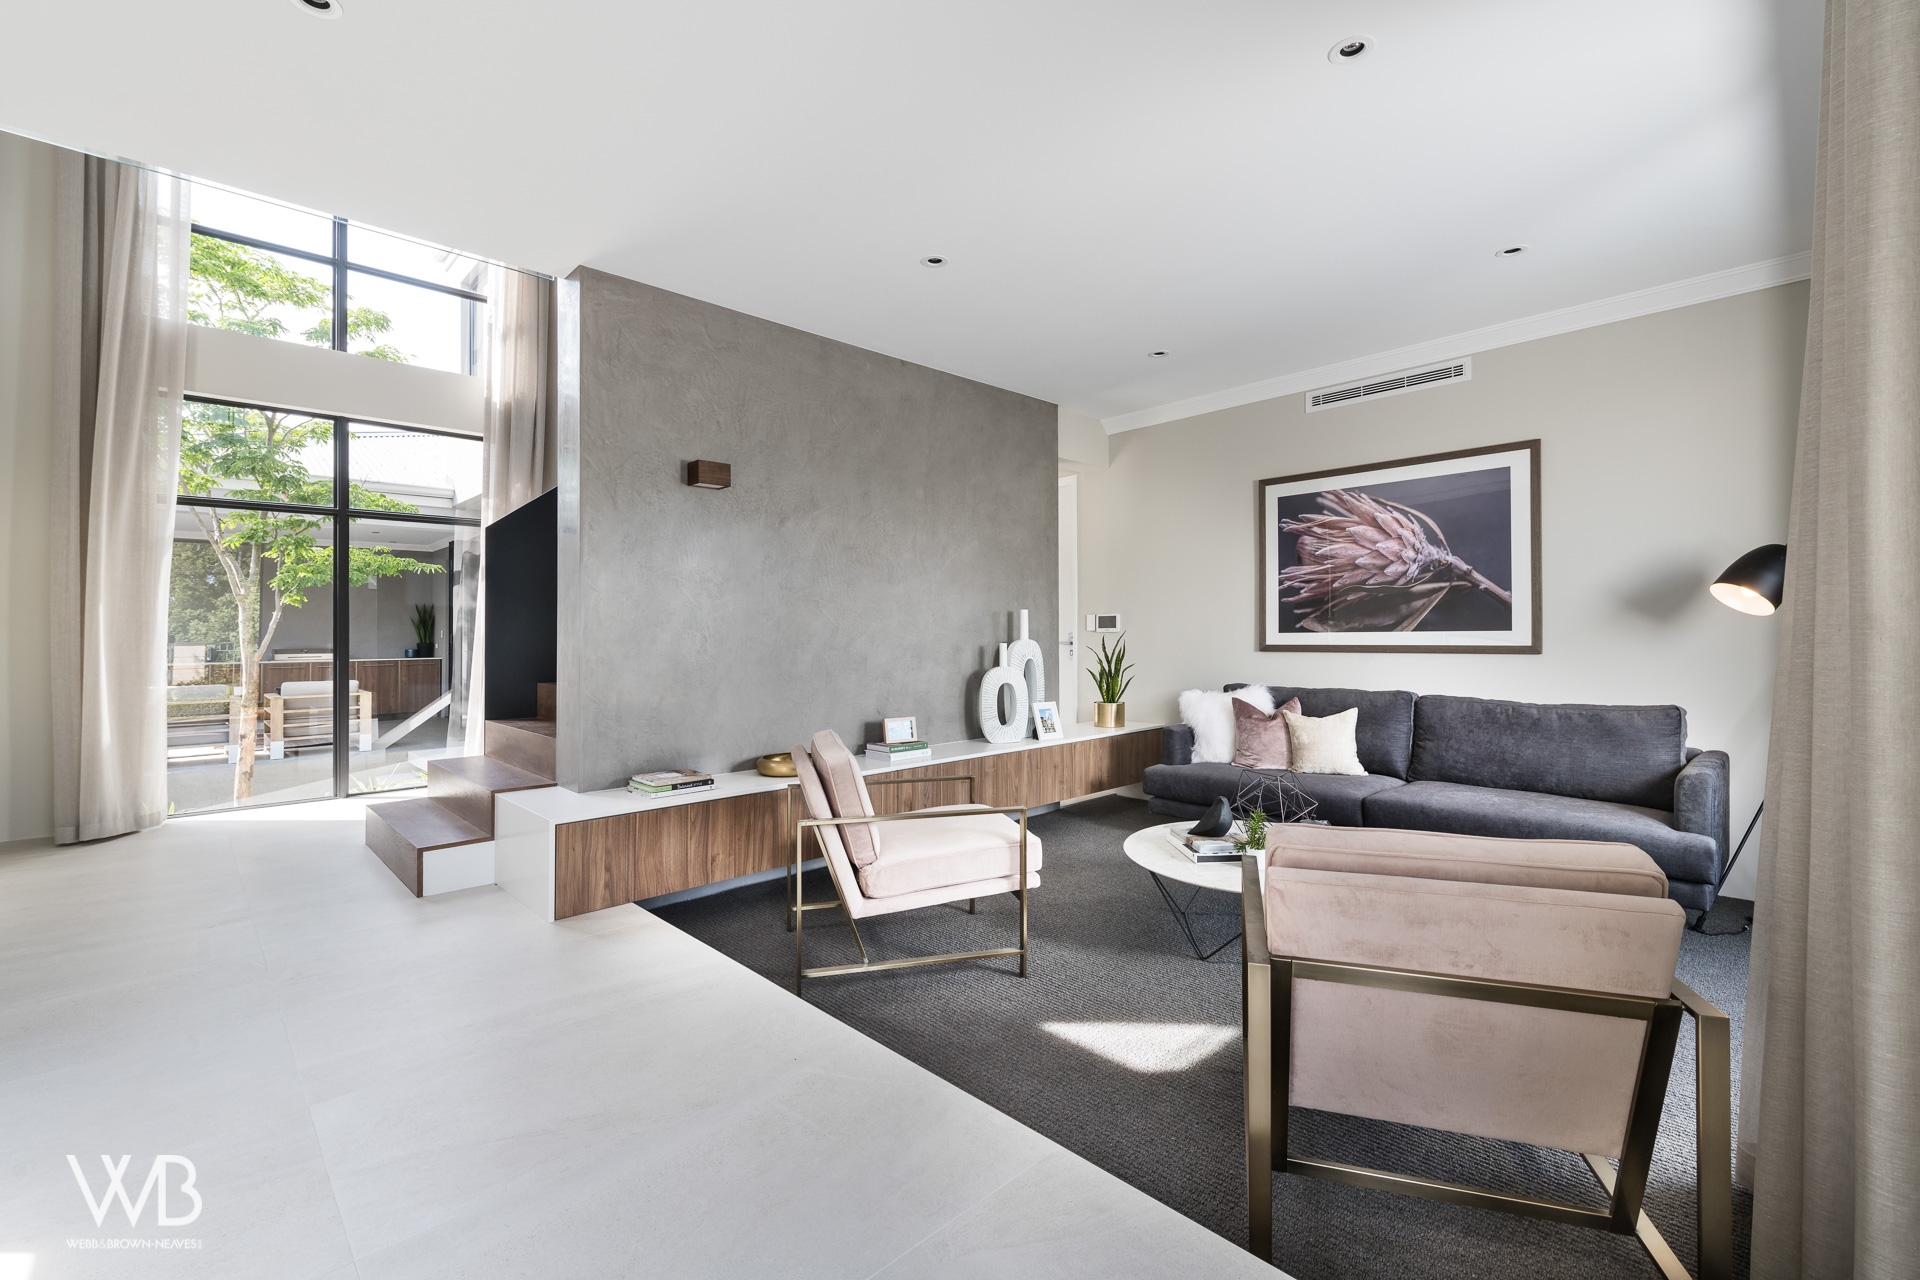 Furniture designed by Jess O'Shea Designs for Webb and Brown-Neaves. Moda Display home. Made by The Maker Designer Kitchens. Dianella, Perth, Western Australia